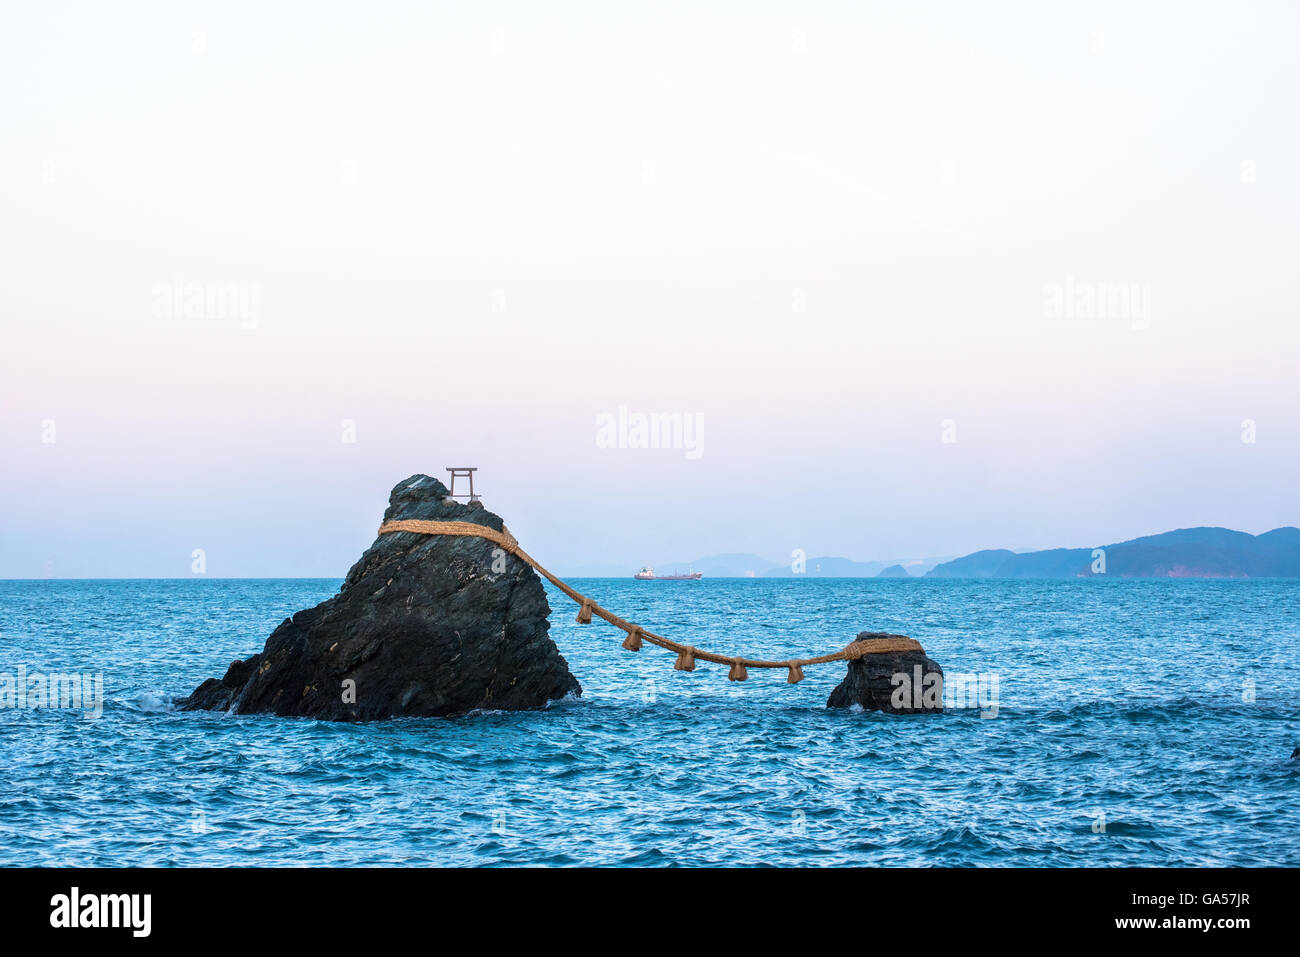 The Married Couple Rocks, or Meoto Iwa, in Ise, Japan - Stock Image